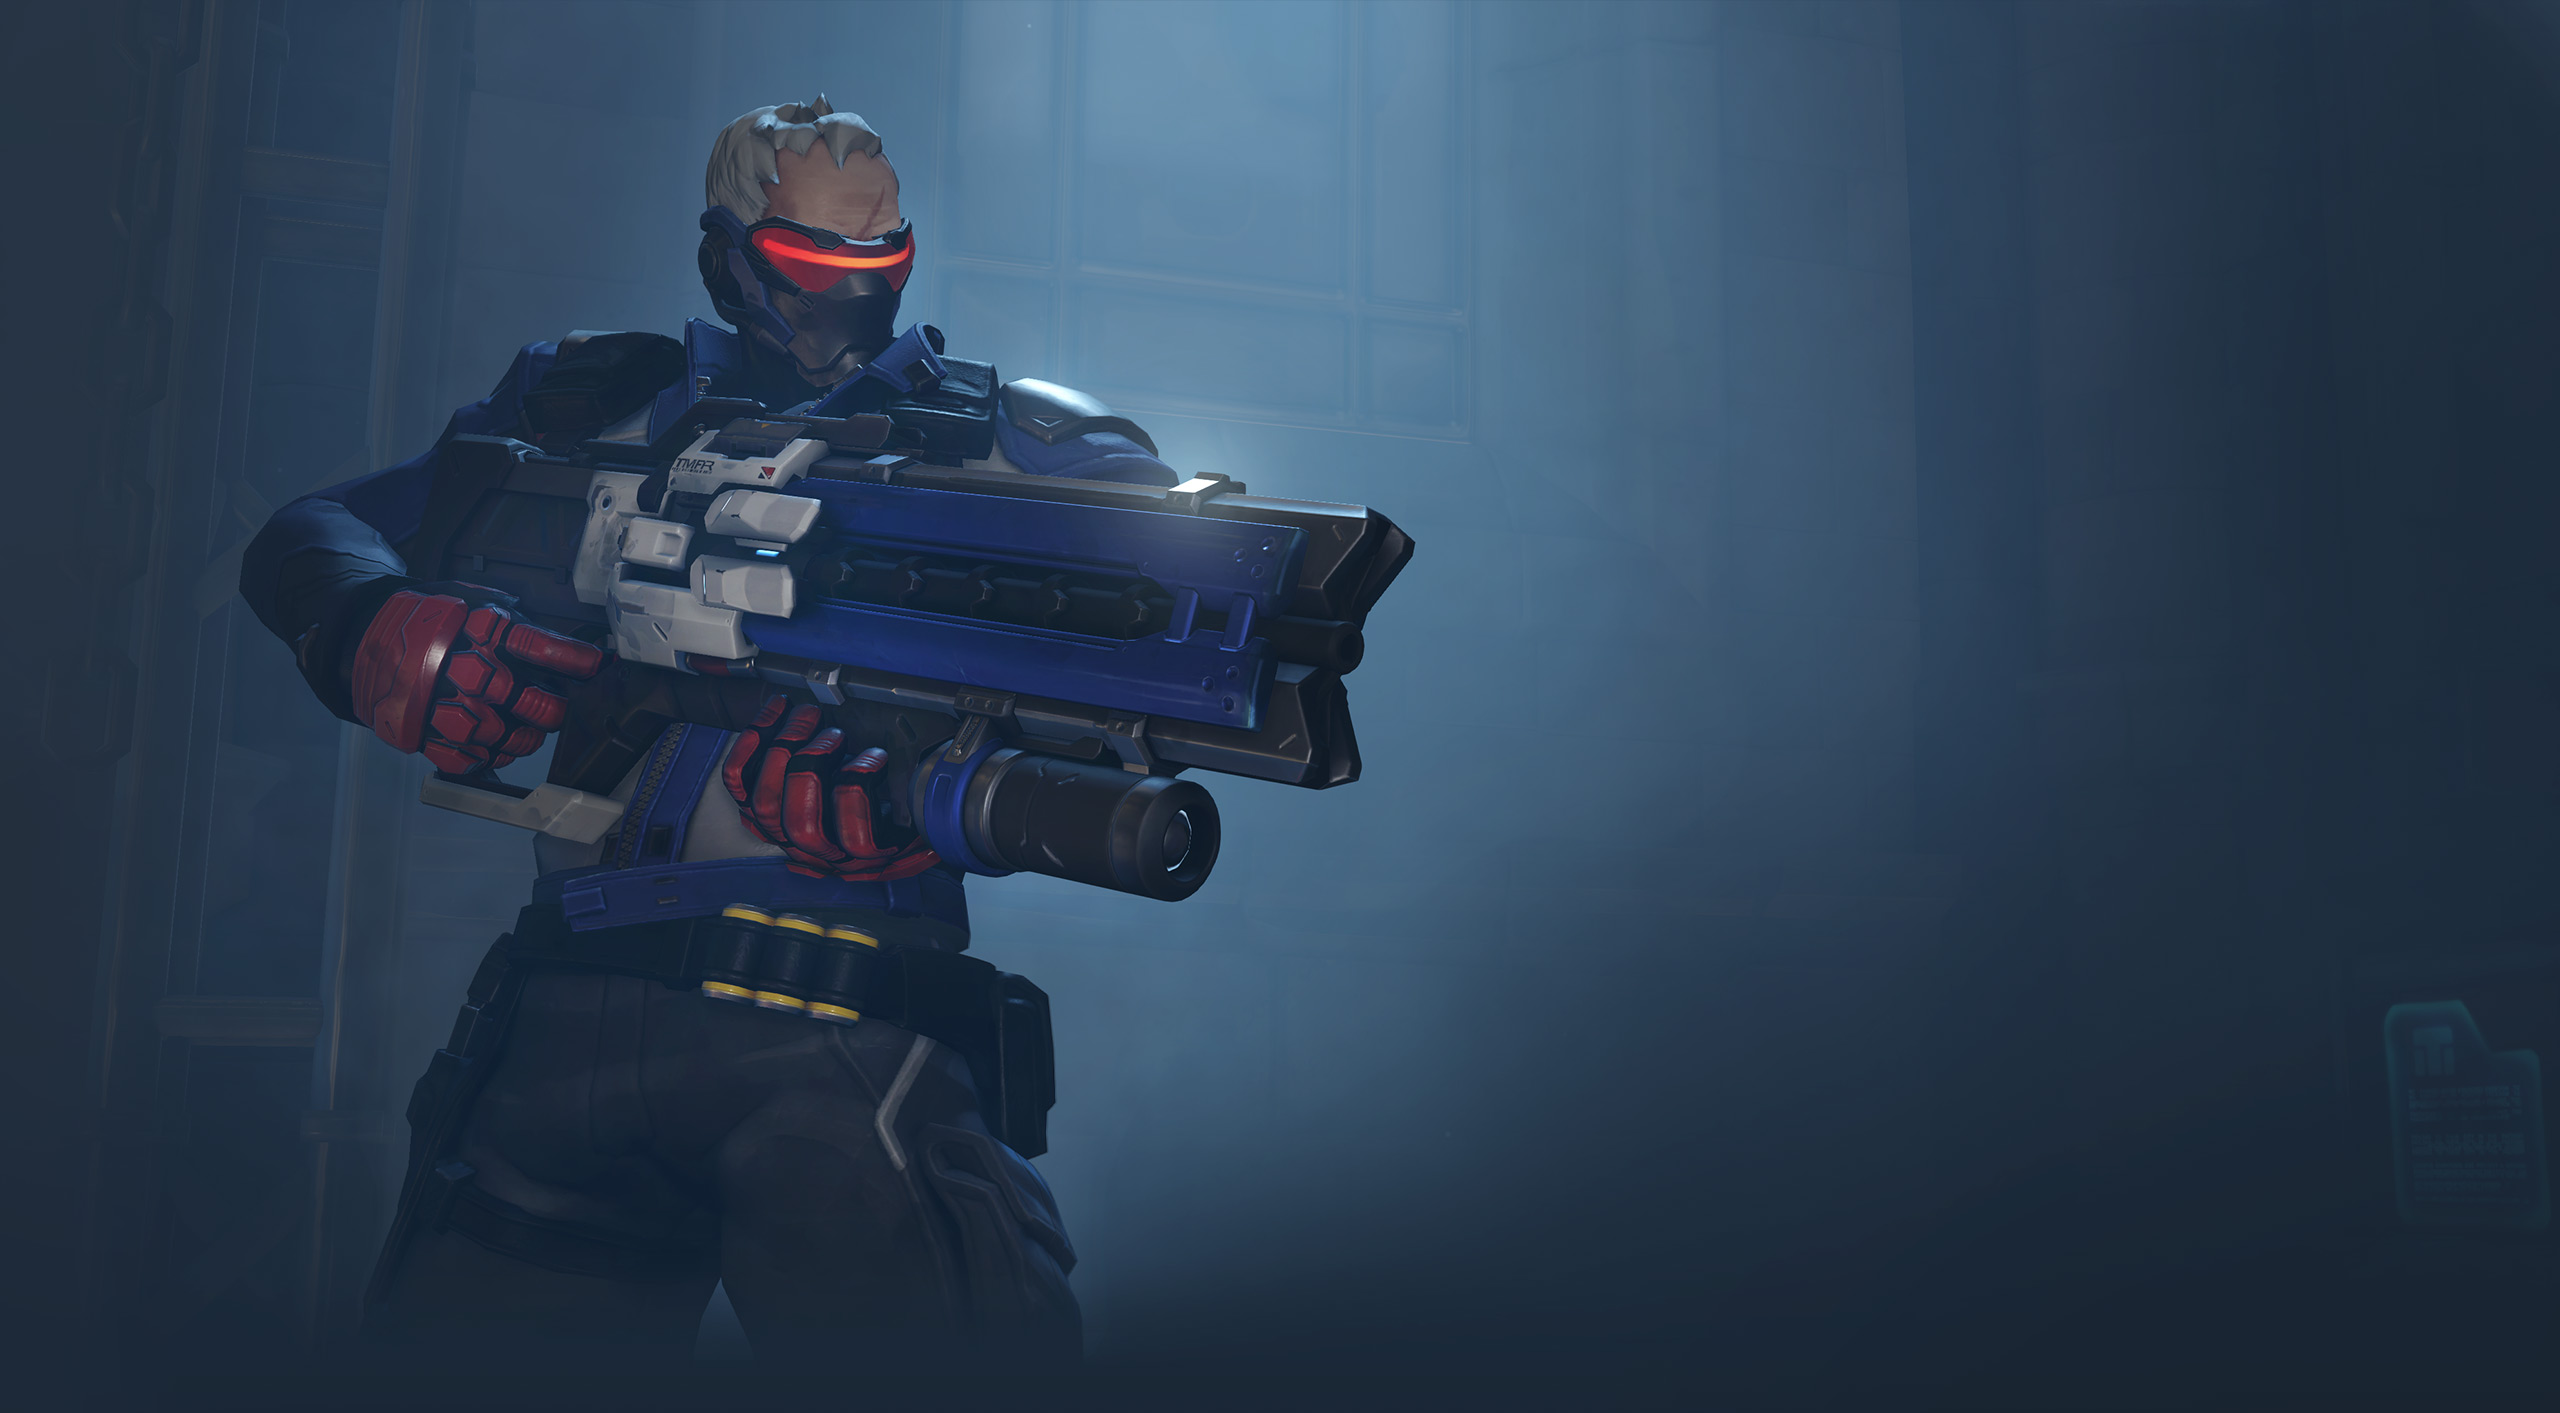 Overwatch Soldier 76 Skins For FREE Unknown Age Unknown